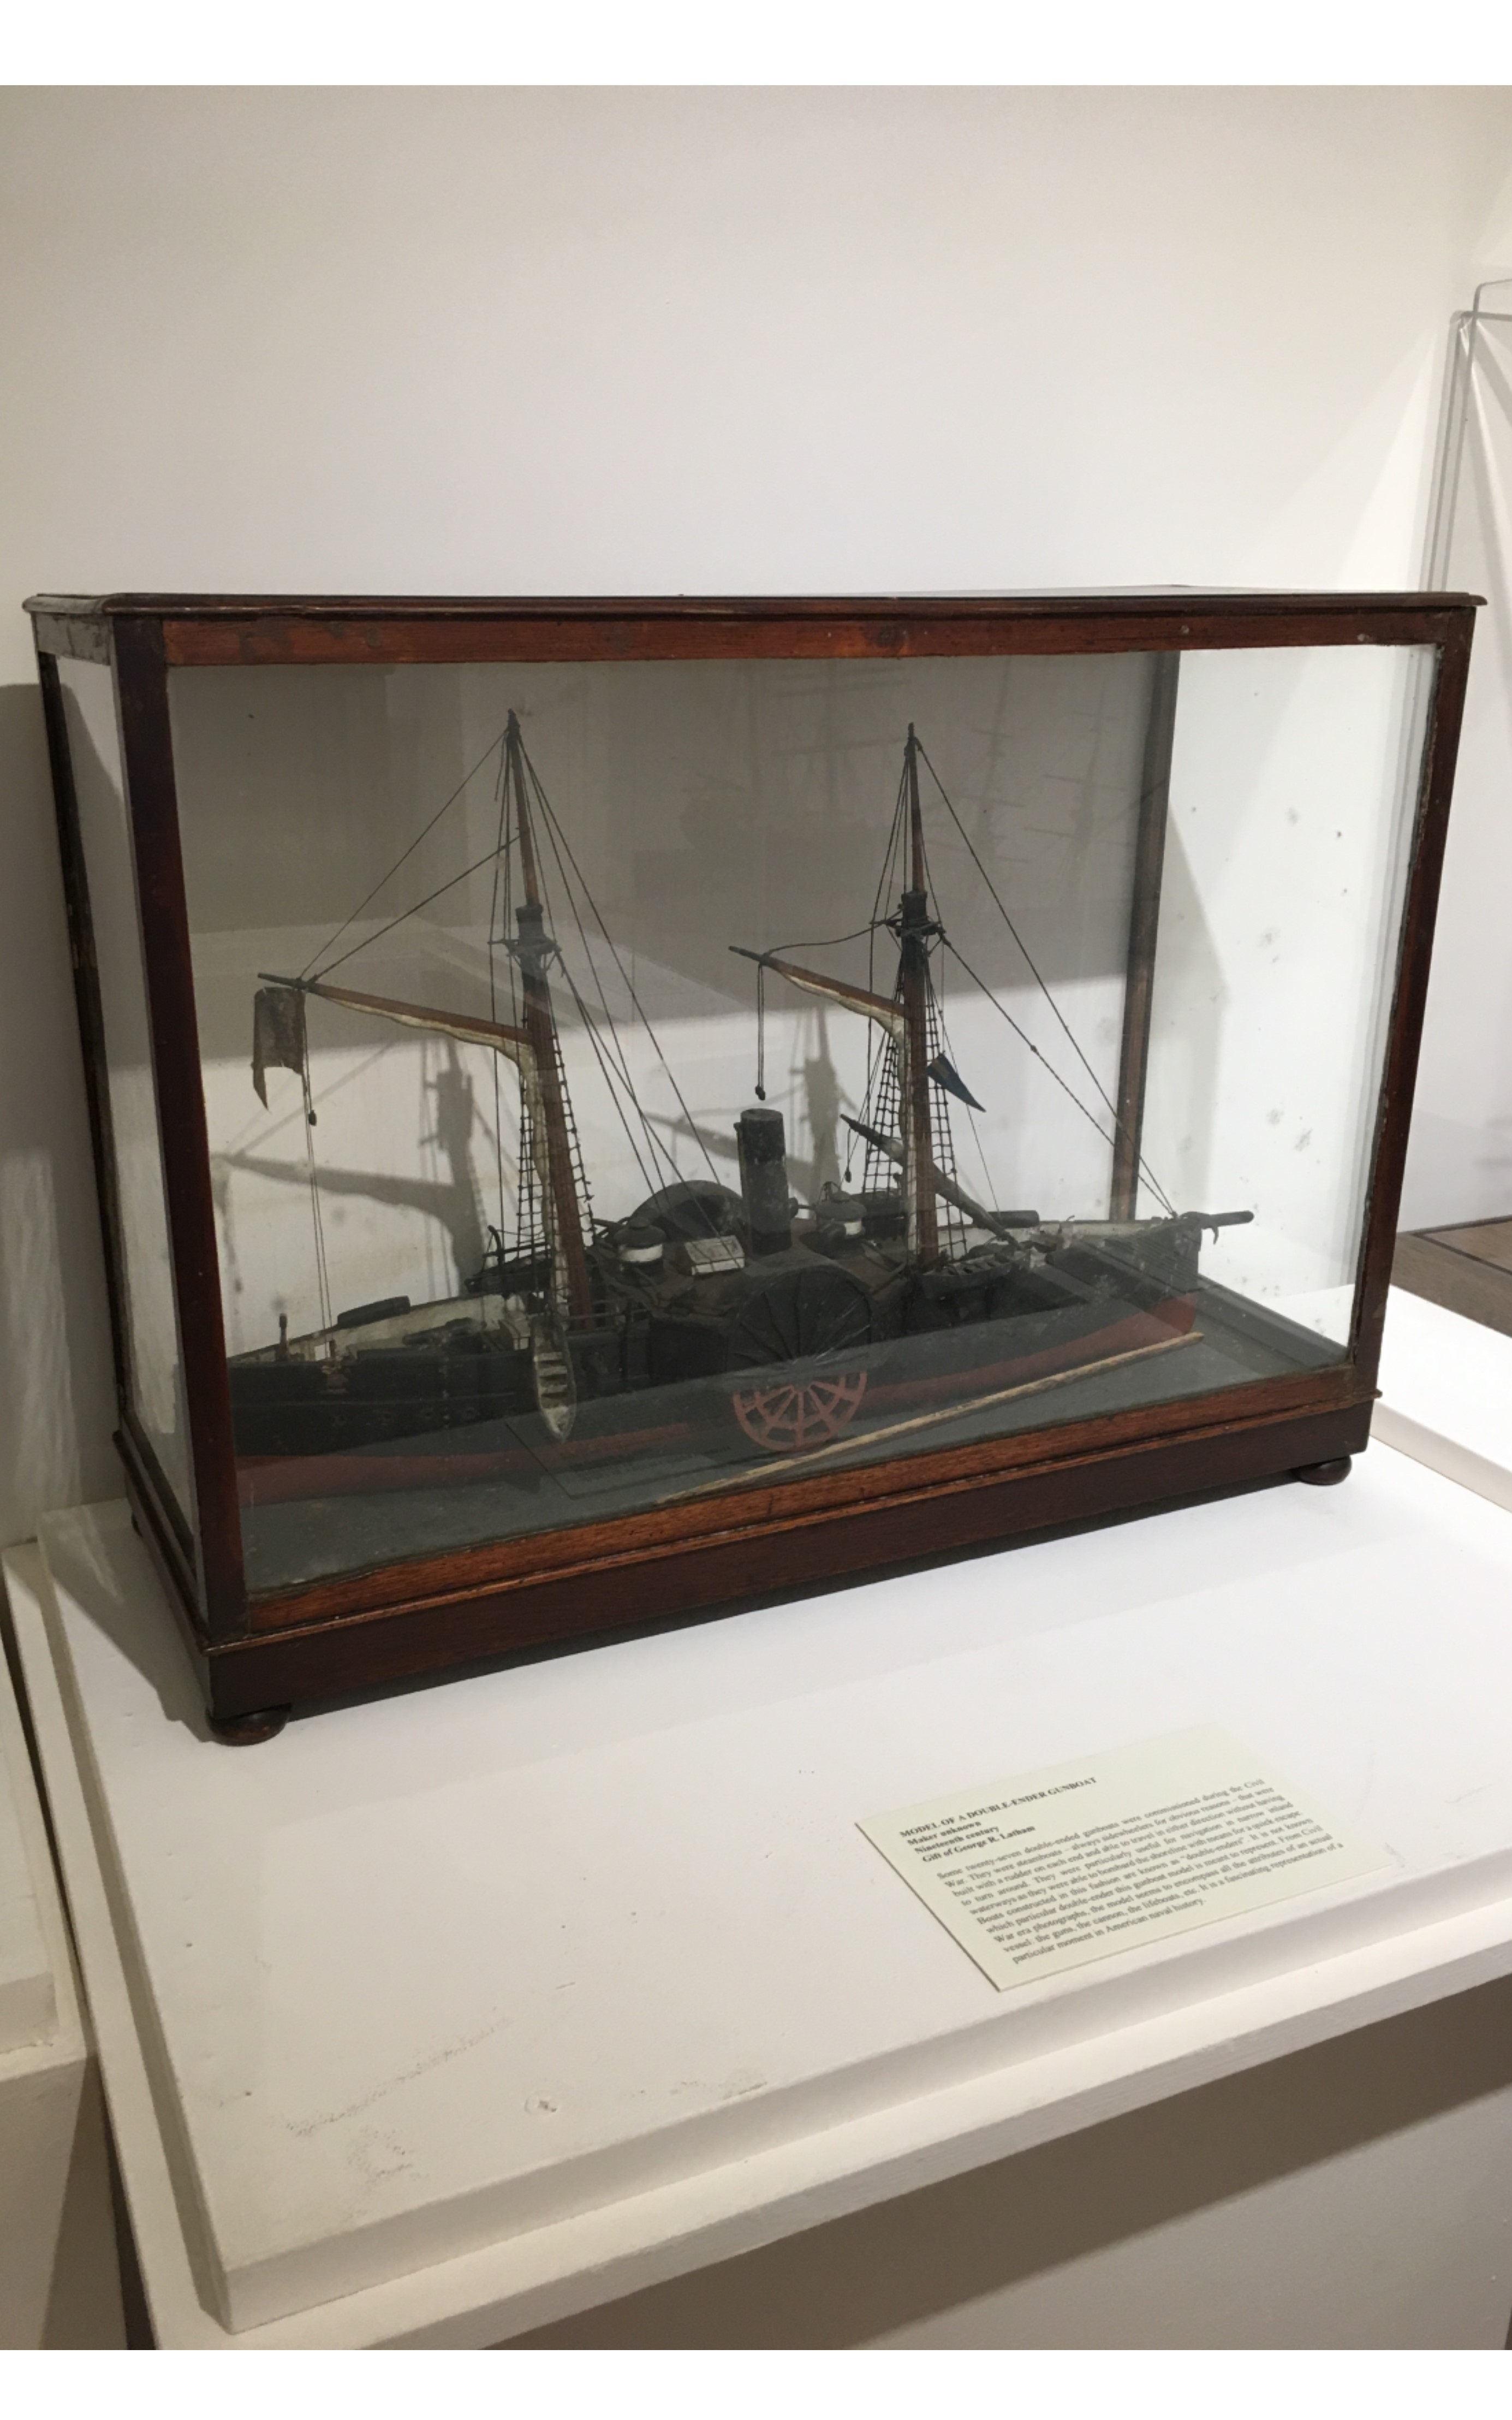 <h3>MODEL OF A DOUBLE-ENDER GUNBOAT</em></h3>